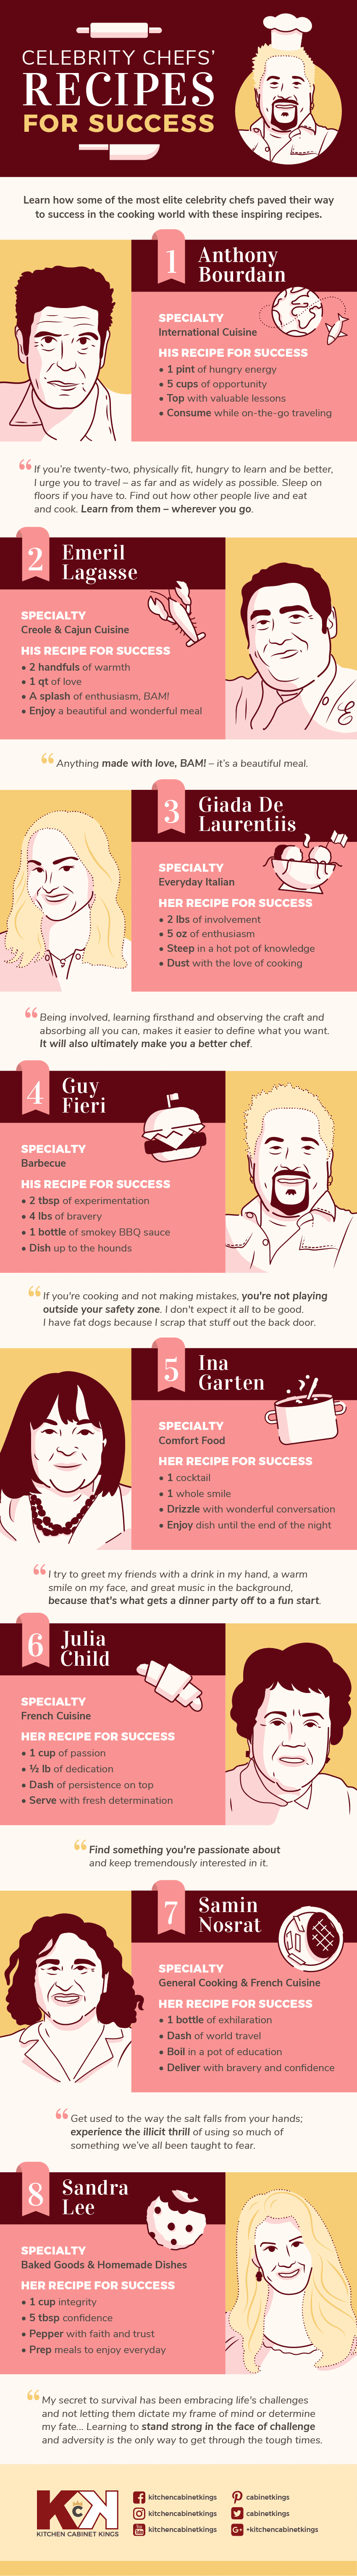 8 Recipes for success by Celebrity Chef #infographic